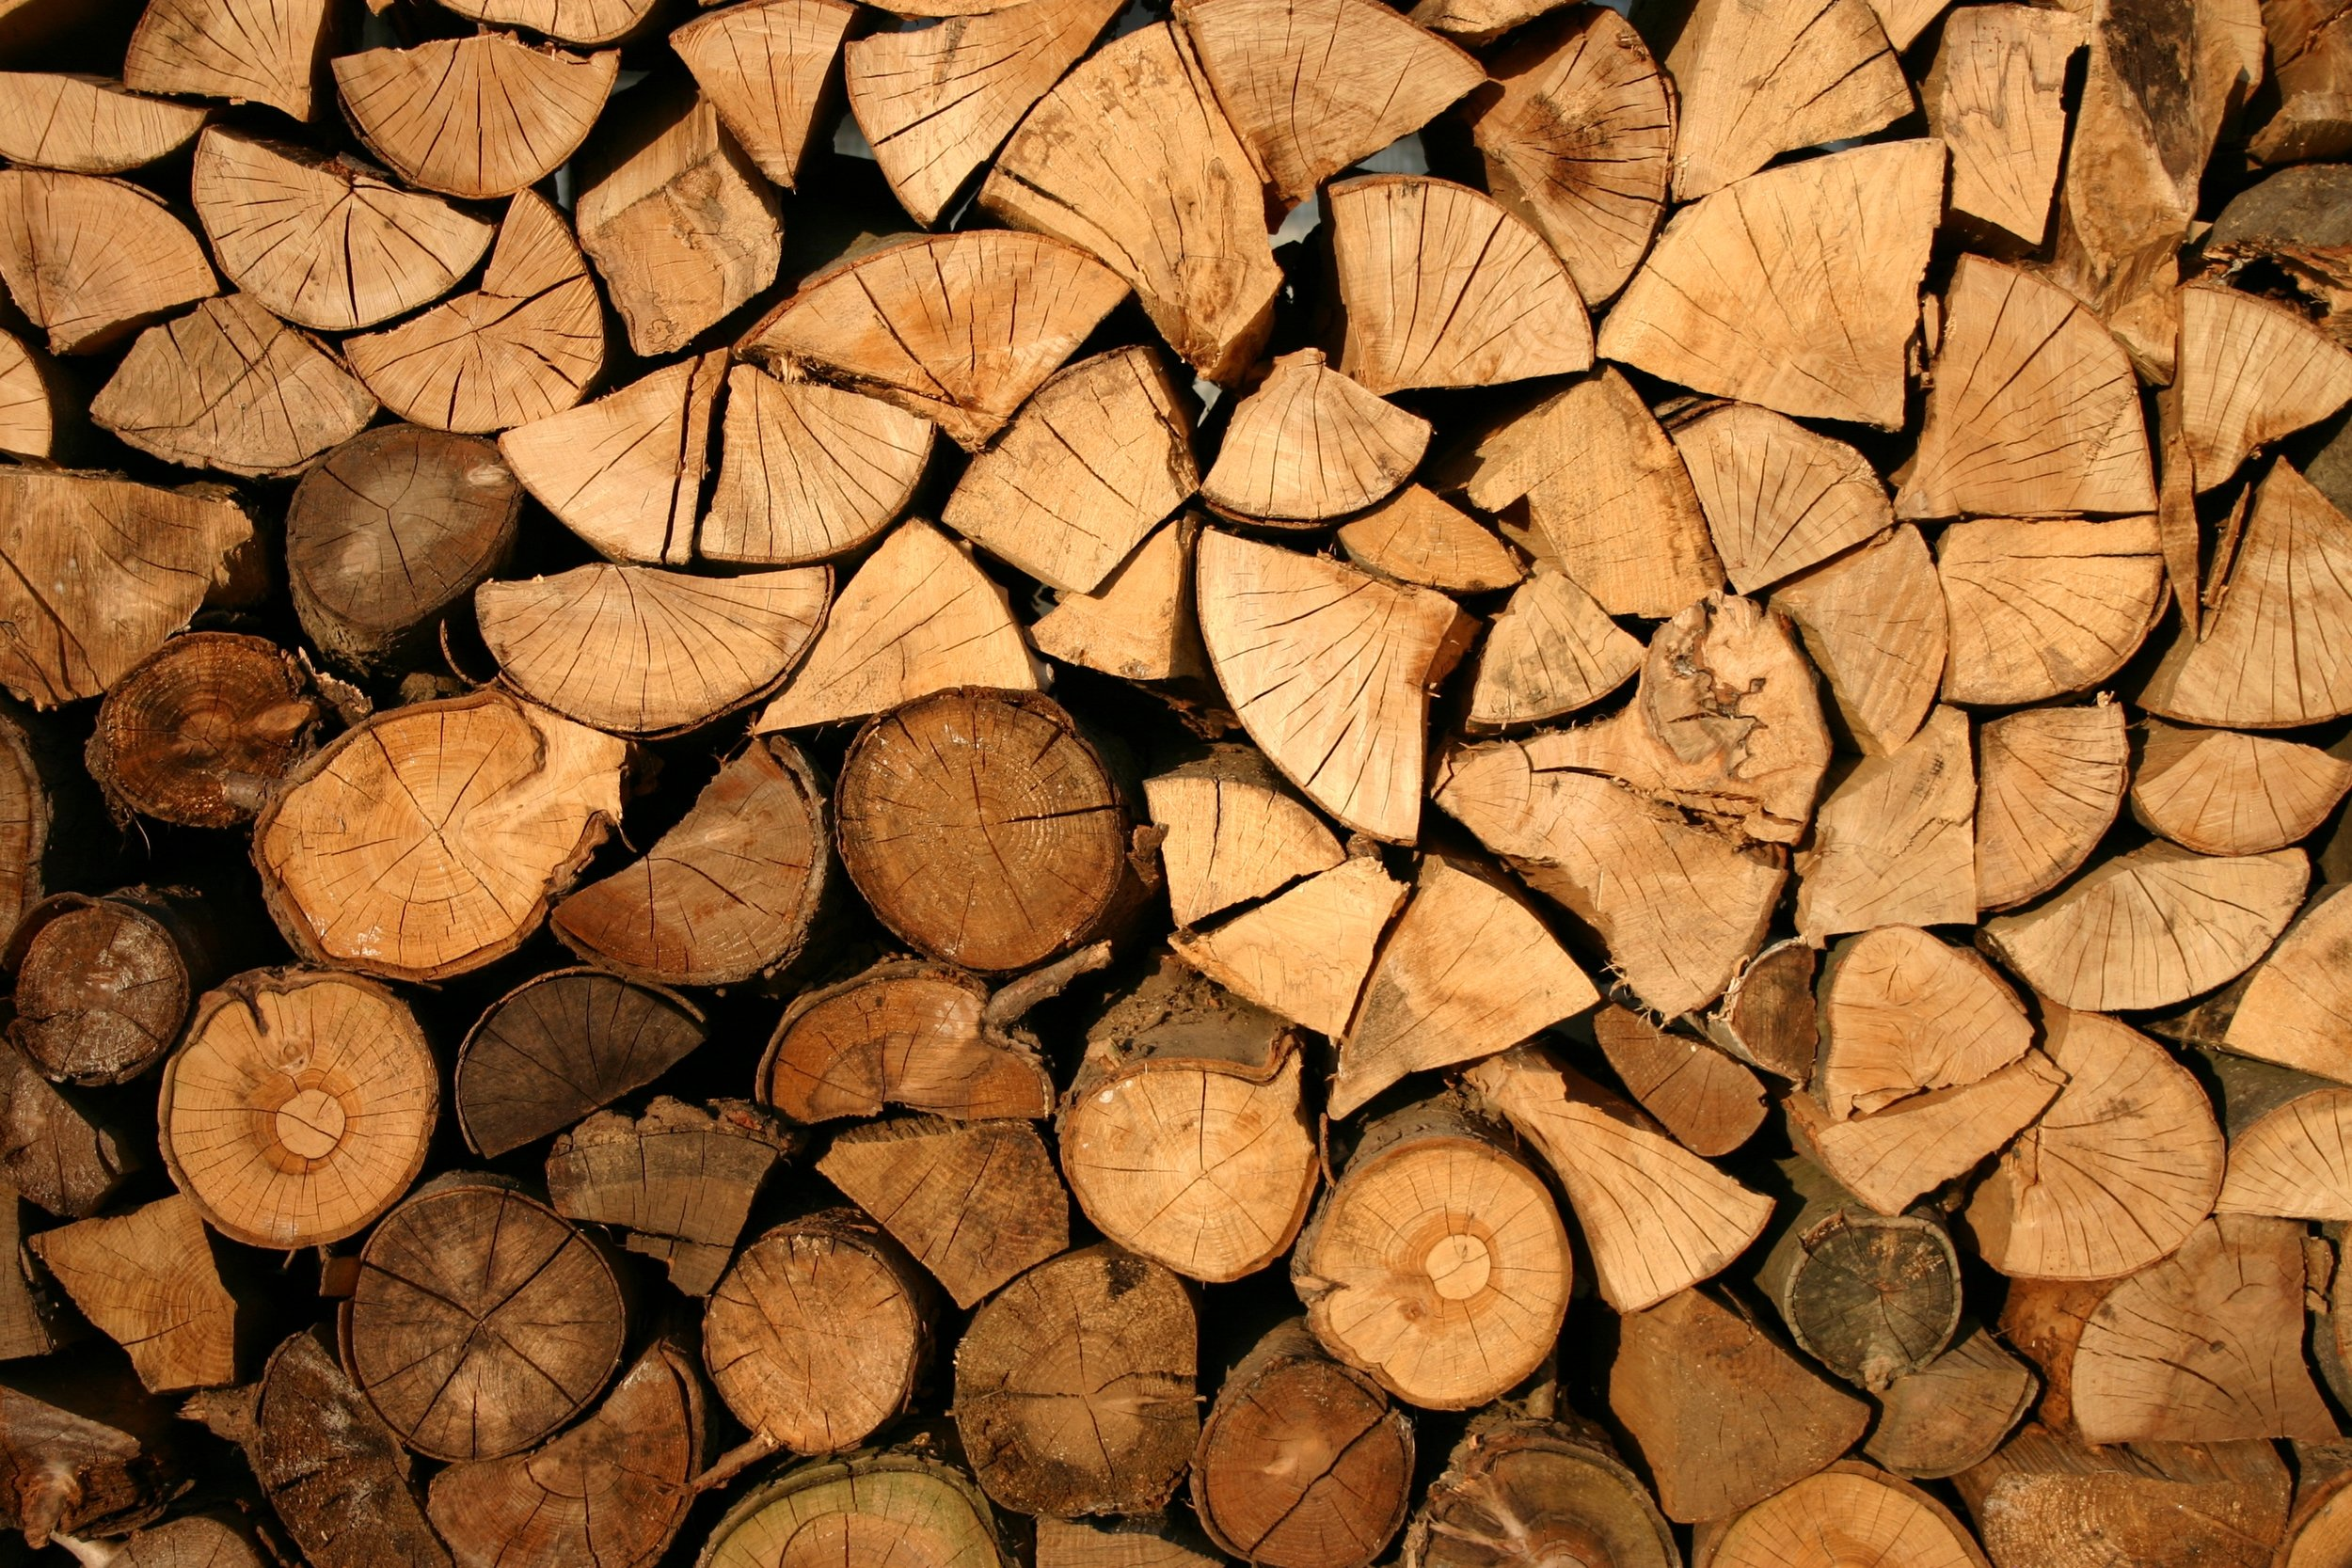 Limbwalkers offers responsibly-harvested firewood as part of its sustainable tree removal service.